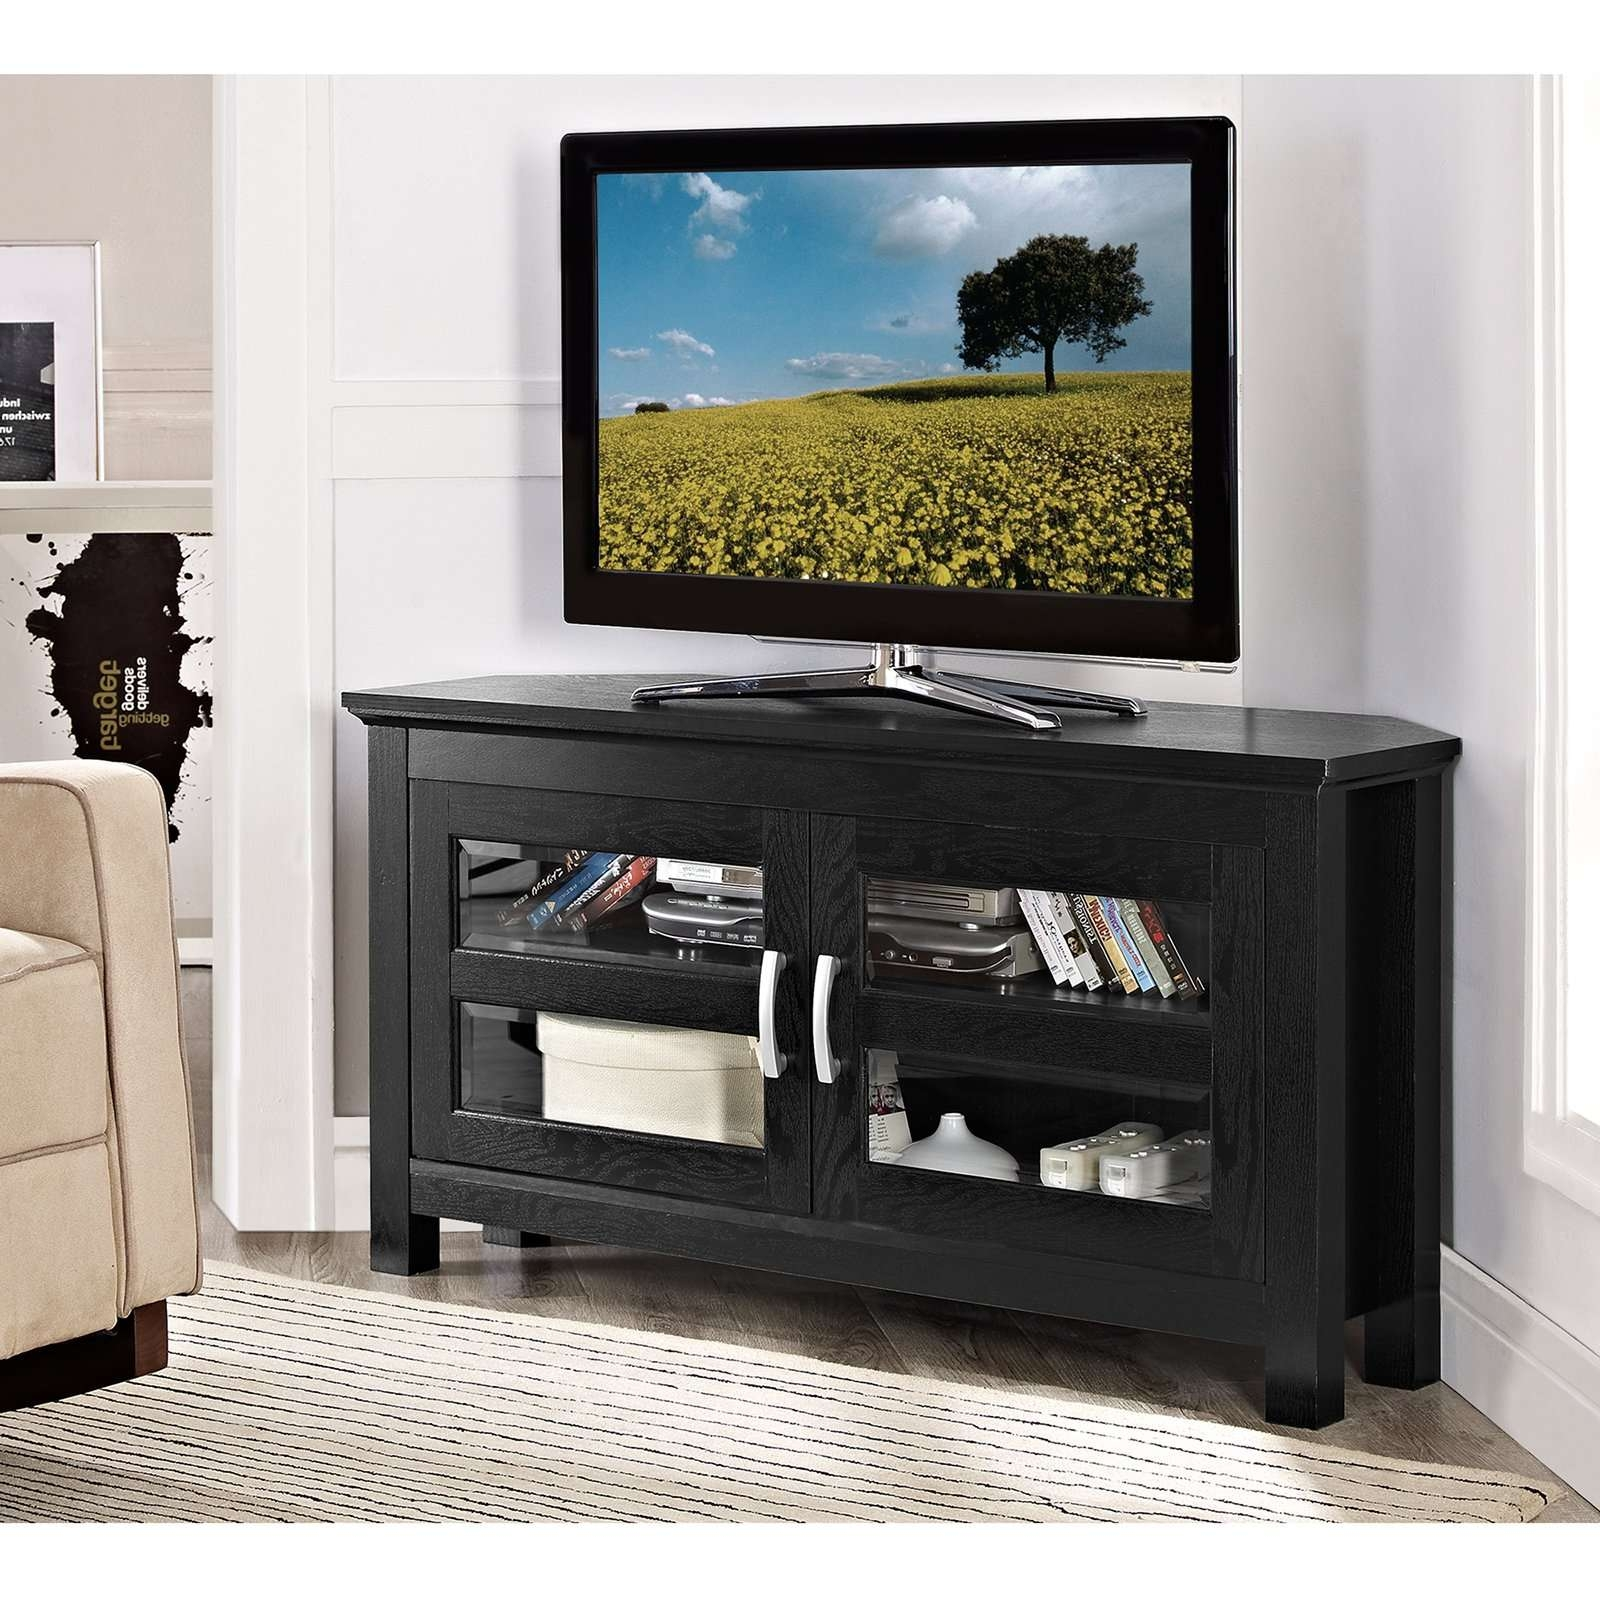 Compton Black Corner Tv Stand | Hayneedle Pertaining To Black Corner Tv Cabinets With Glass Doors (View 5 of 20)